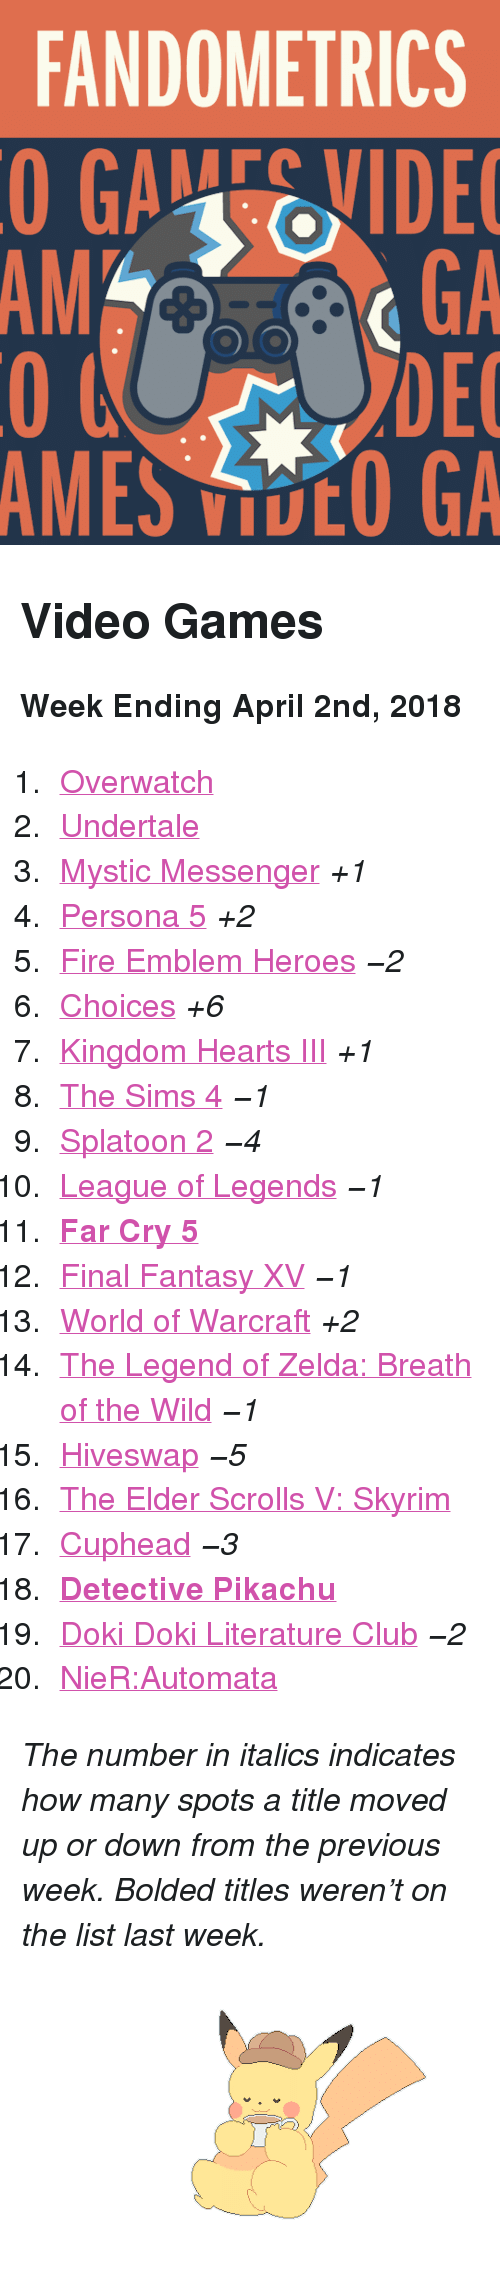 """Breath Of The: FANDOMETRICS  GAEIDE  GA  DEC  MES DCO GA  AMGA <h2>Video Games</h2><p><b>Week Ending April 2nd, 2018</b></p><ol><li><a href=""""http://www.tumblr.com/search/overwatch"""">Overwatch</a></li>  <li><a href=""""http://www.tumblr.com/search/undertale"""">Undertale</a></li>  <li><a href=""""http://www.tumblr.com/search/mystic%20messenger"""">Mystic Messenger</a><i>+1</i></li>  <li><a href=""""http://www.tumblr.com/search/persona%205"""">Persona 5</a><i>+2</i></li>  <li><a href=""""http://www.tumblr.com/search/fire%20emblem%20heroes"""">Fire Emblem Heroes</a><i><i>−2</i></i></li>  <li><a href=""""http://www.tumblr.com/search/playchoices"""">Choices</a><i>+6</i></li>  <li><a href=""""http://www.tumblr.com/search/kingdom%20hearts"""">Kingdom Hearts III</a><i>+1</i></li>  <li><a href=""""http://www.tumblr.com/search/sims%204"""">The Sims 4</a><i><i>−1</i></i></li>  <li><a href=""""http://www.tumblr.com/search/splatoon"""">Splatoon 2</a><i><i>−4</i></i></li>  <li><a href=""""http://www.tumblr.com/search/league%20of%20legends"""">League of Legends</a><i><i>−1</i></i></li>  <li><a href=""""http://www.tumblr.com/search/far%20cry%205""""><b>Far Cry 5</b></a></li>  <li><a href=""""http://www.tumblr.com/search/final%20fantasy%20xv"""">Final Fantasy XV</a><i><i>−1</i></i></li>  <li><a href=""""http://www.tumblr.com/search/world%20of%20warcraft"""">World of Warcraft</a><i>+2</i></li>  <li><a href=""""http://www.tumblr.com/search/breath%20of%20the%20wild"""">The Legend of Zelda: Breath of the Wild</a><i><i>−1</i></i></li>  <li><a href=""""http://www.tumblr.com/search/hiveswap"""">Hiveswap</a><i><i>−5</i></i></li>  <li><a href=""""http://www.tumblr.com/search/skyrim"""">The Elder Scrolls V: Skyrim</a></li>  <li><a href=""""http://www.tumblr.com/search/cuphead"""">Cuphead</a><i><i>−3</i></i></li>  <li><a href=""""http://www.tumblr.com/search/detective%20pikachu""""><b>Detective Pikachu</b></a></li>  <li><a href=""""http://www.tumblr.com/search/doki%20doki%20literature%20club"""">Doki Doki Literature Club</a><i><i>−2</i></i></li>  <li><a href=""""http://www.tumblr.com/search/nier%20autom"""